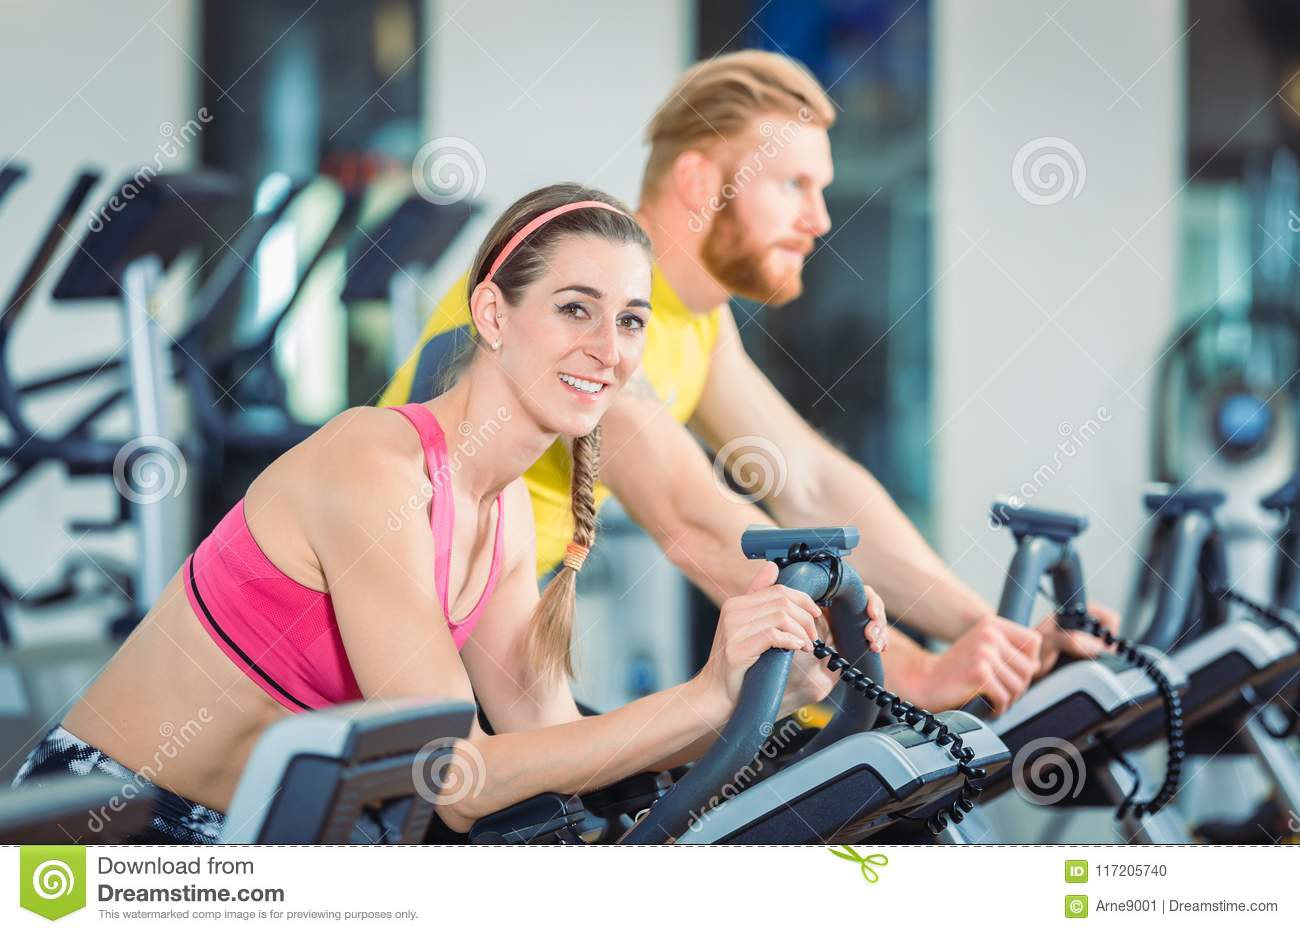 Portrait of a beautiful woman during cardio routine on stationary bicycle